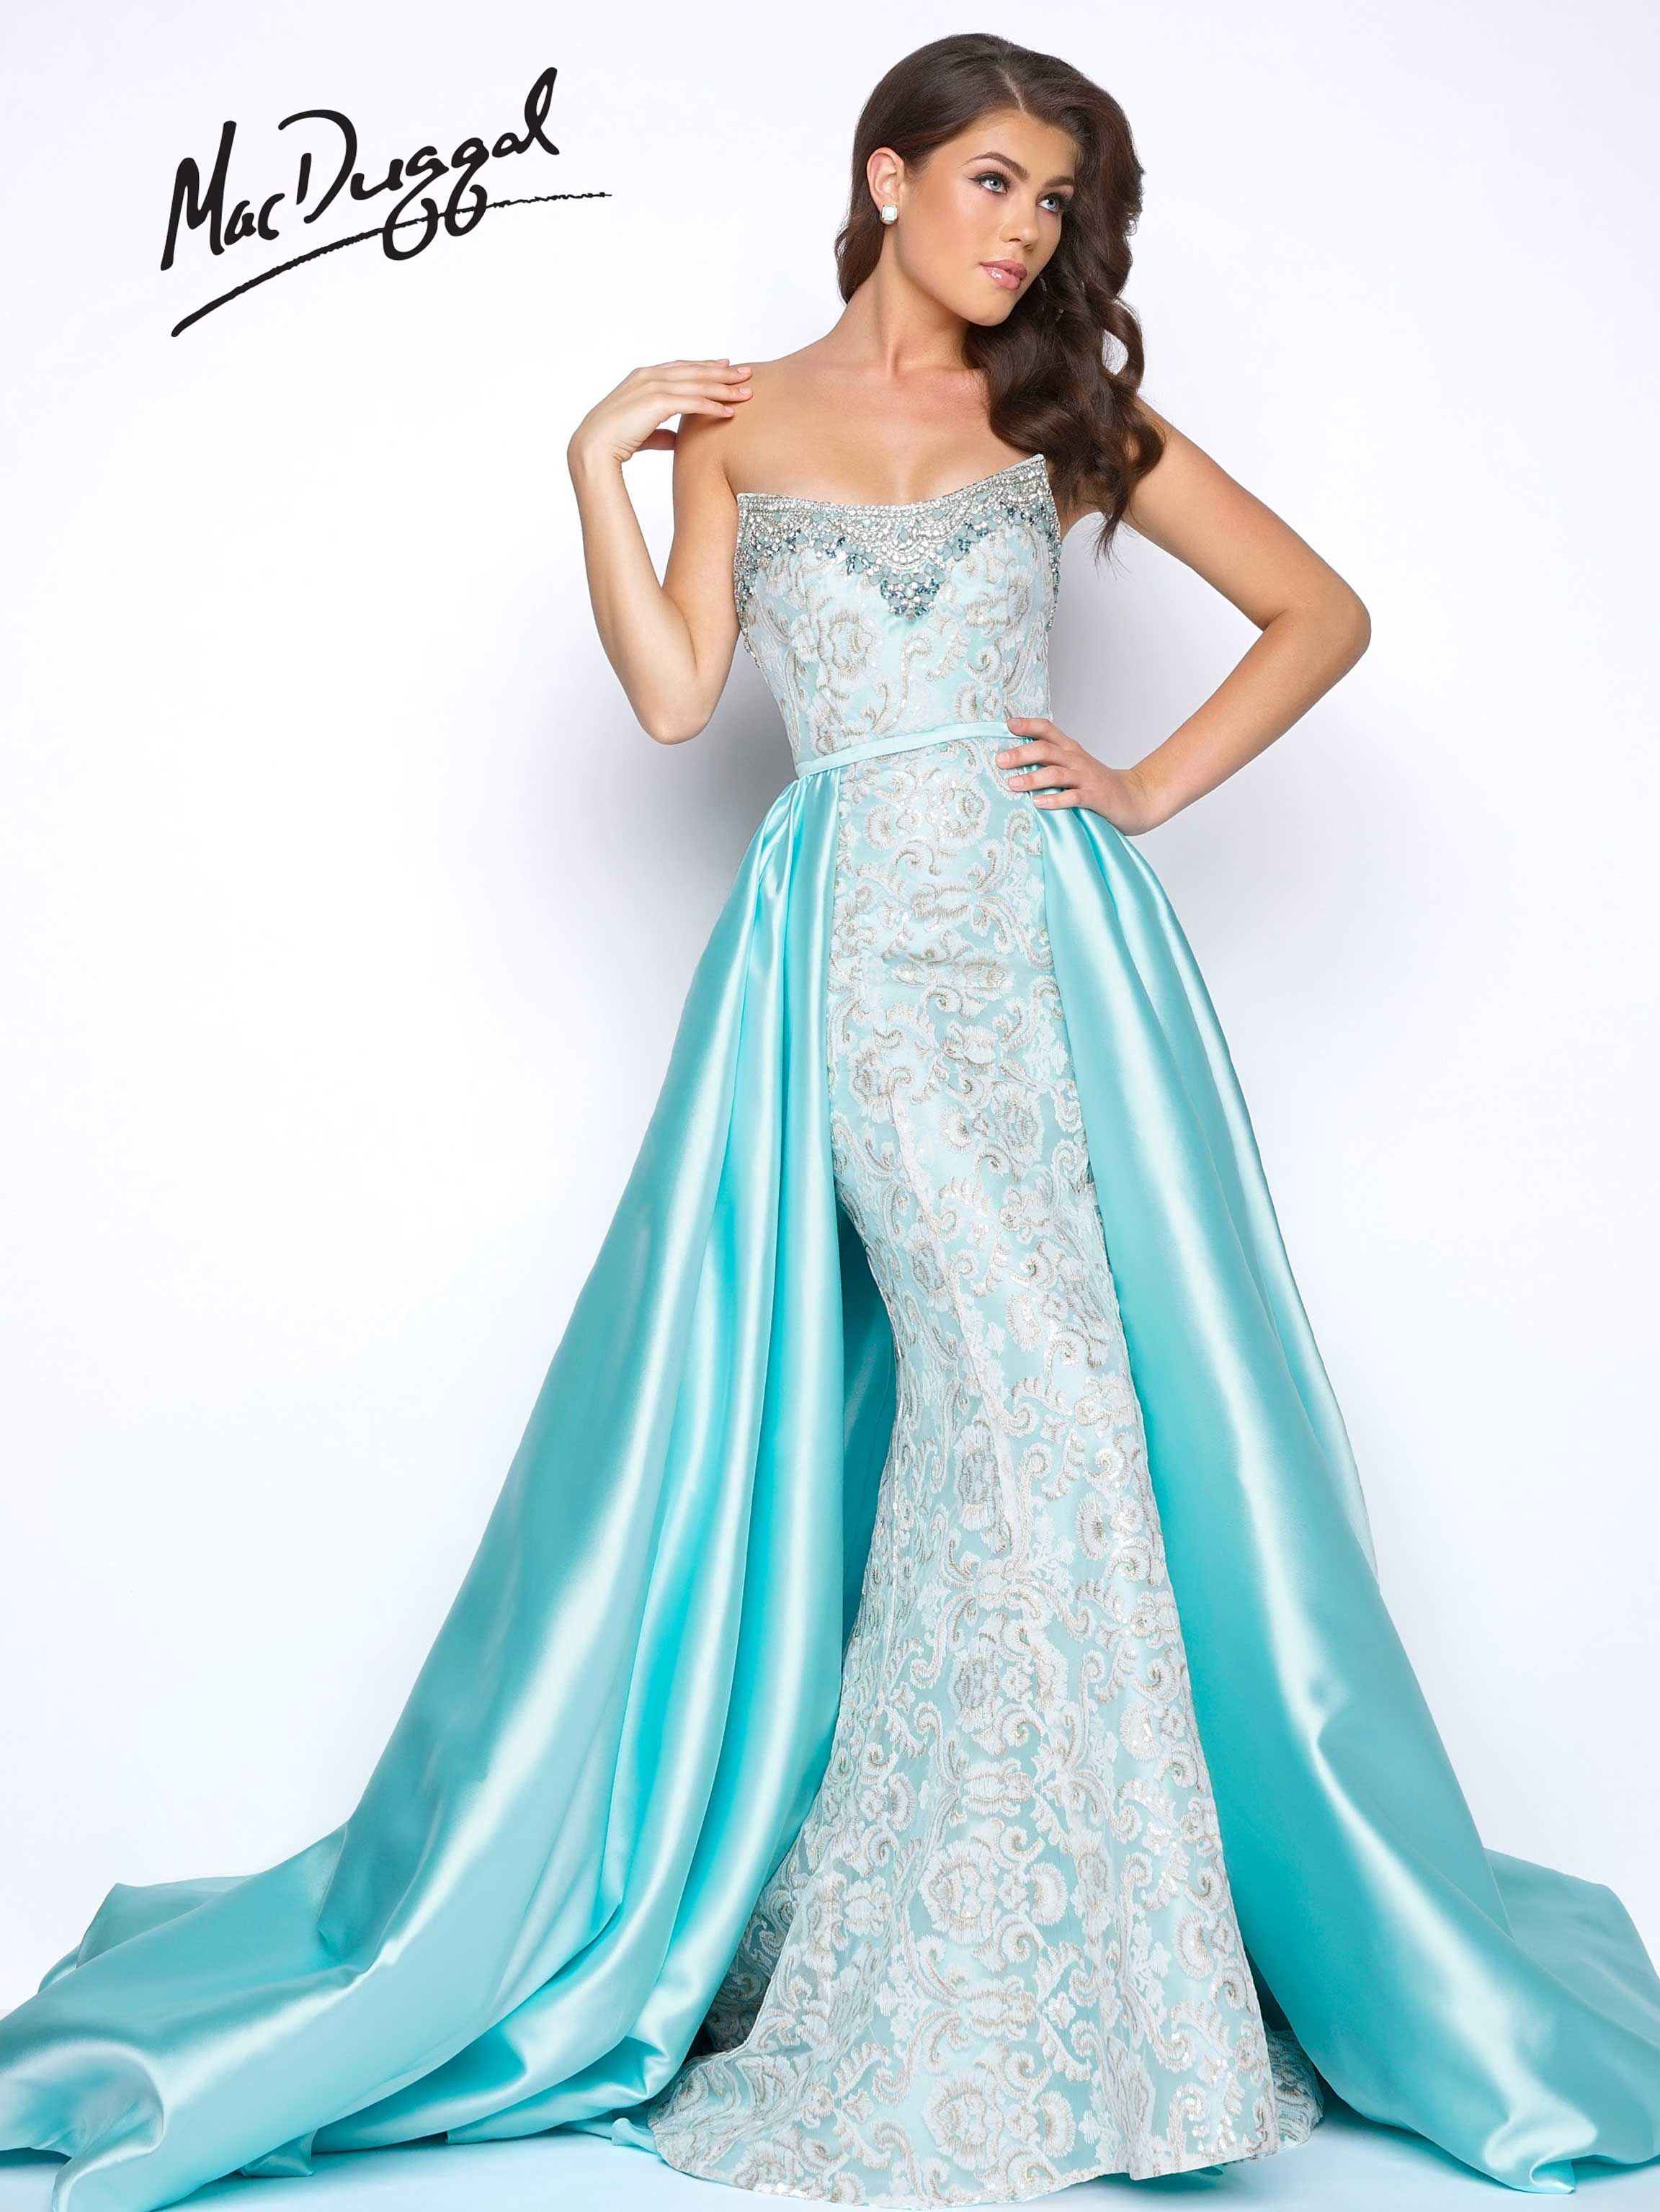 Strapless, embroidered mermaid prom dress with jewel trimmed ...